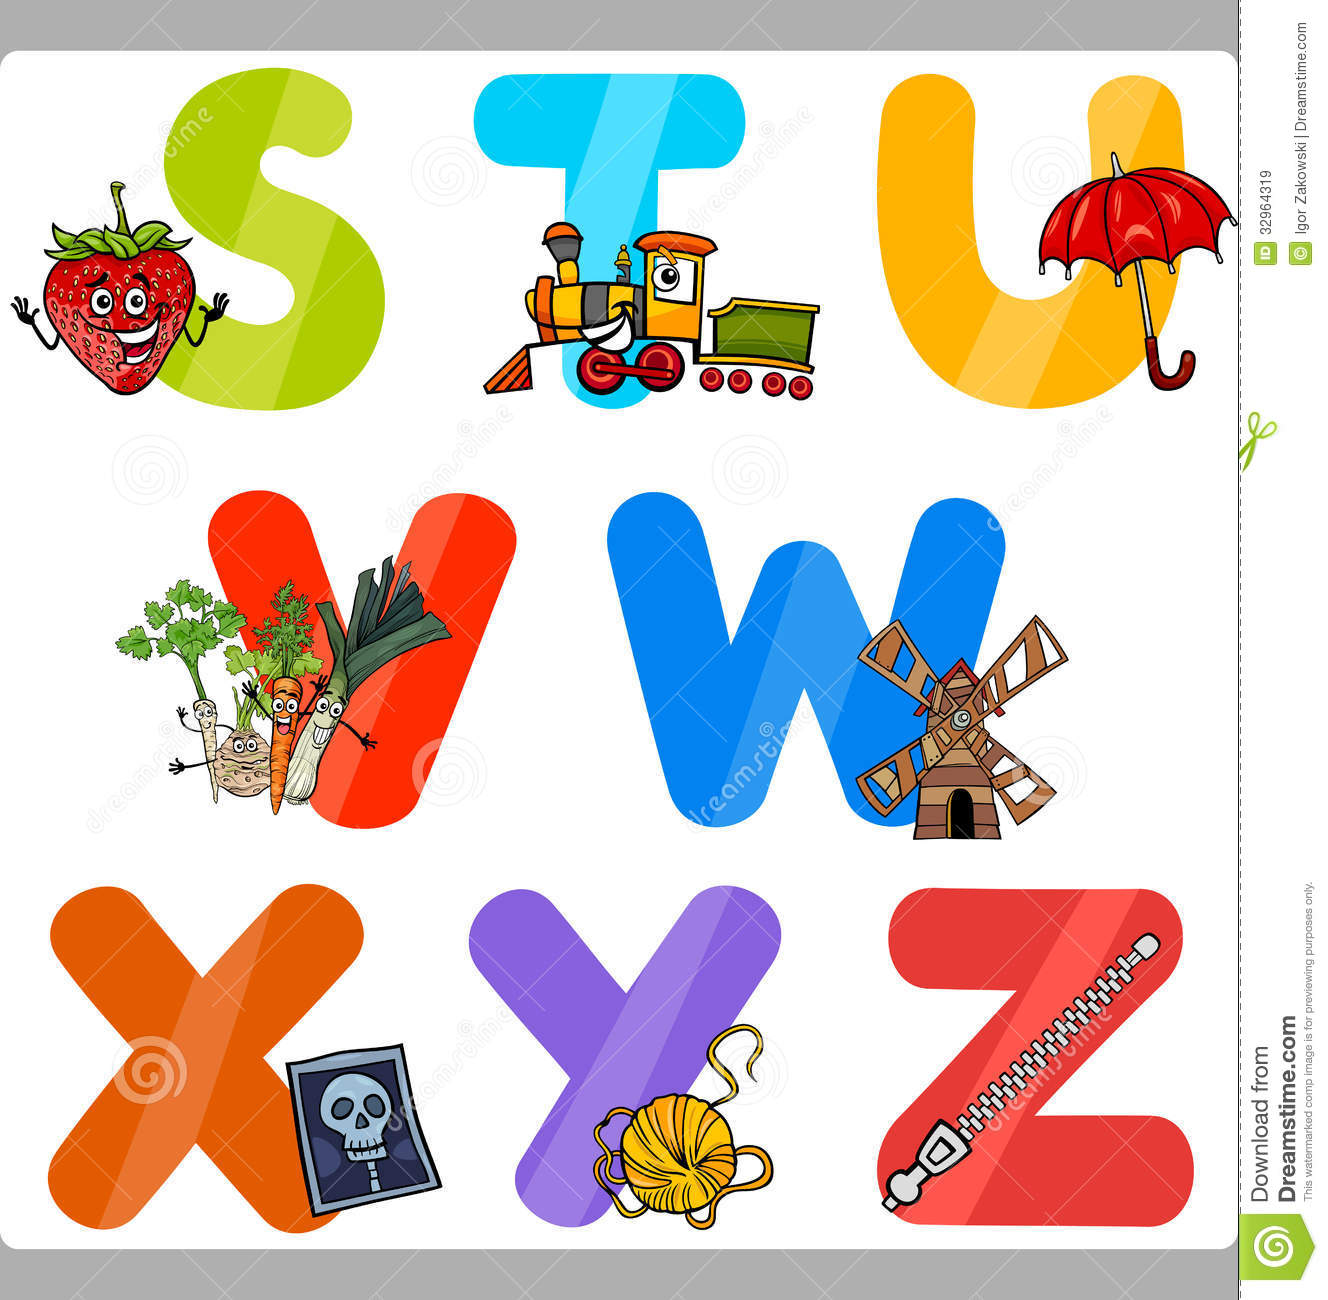 Education Cartoon Alphabet Letters For Kids Royalty Free